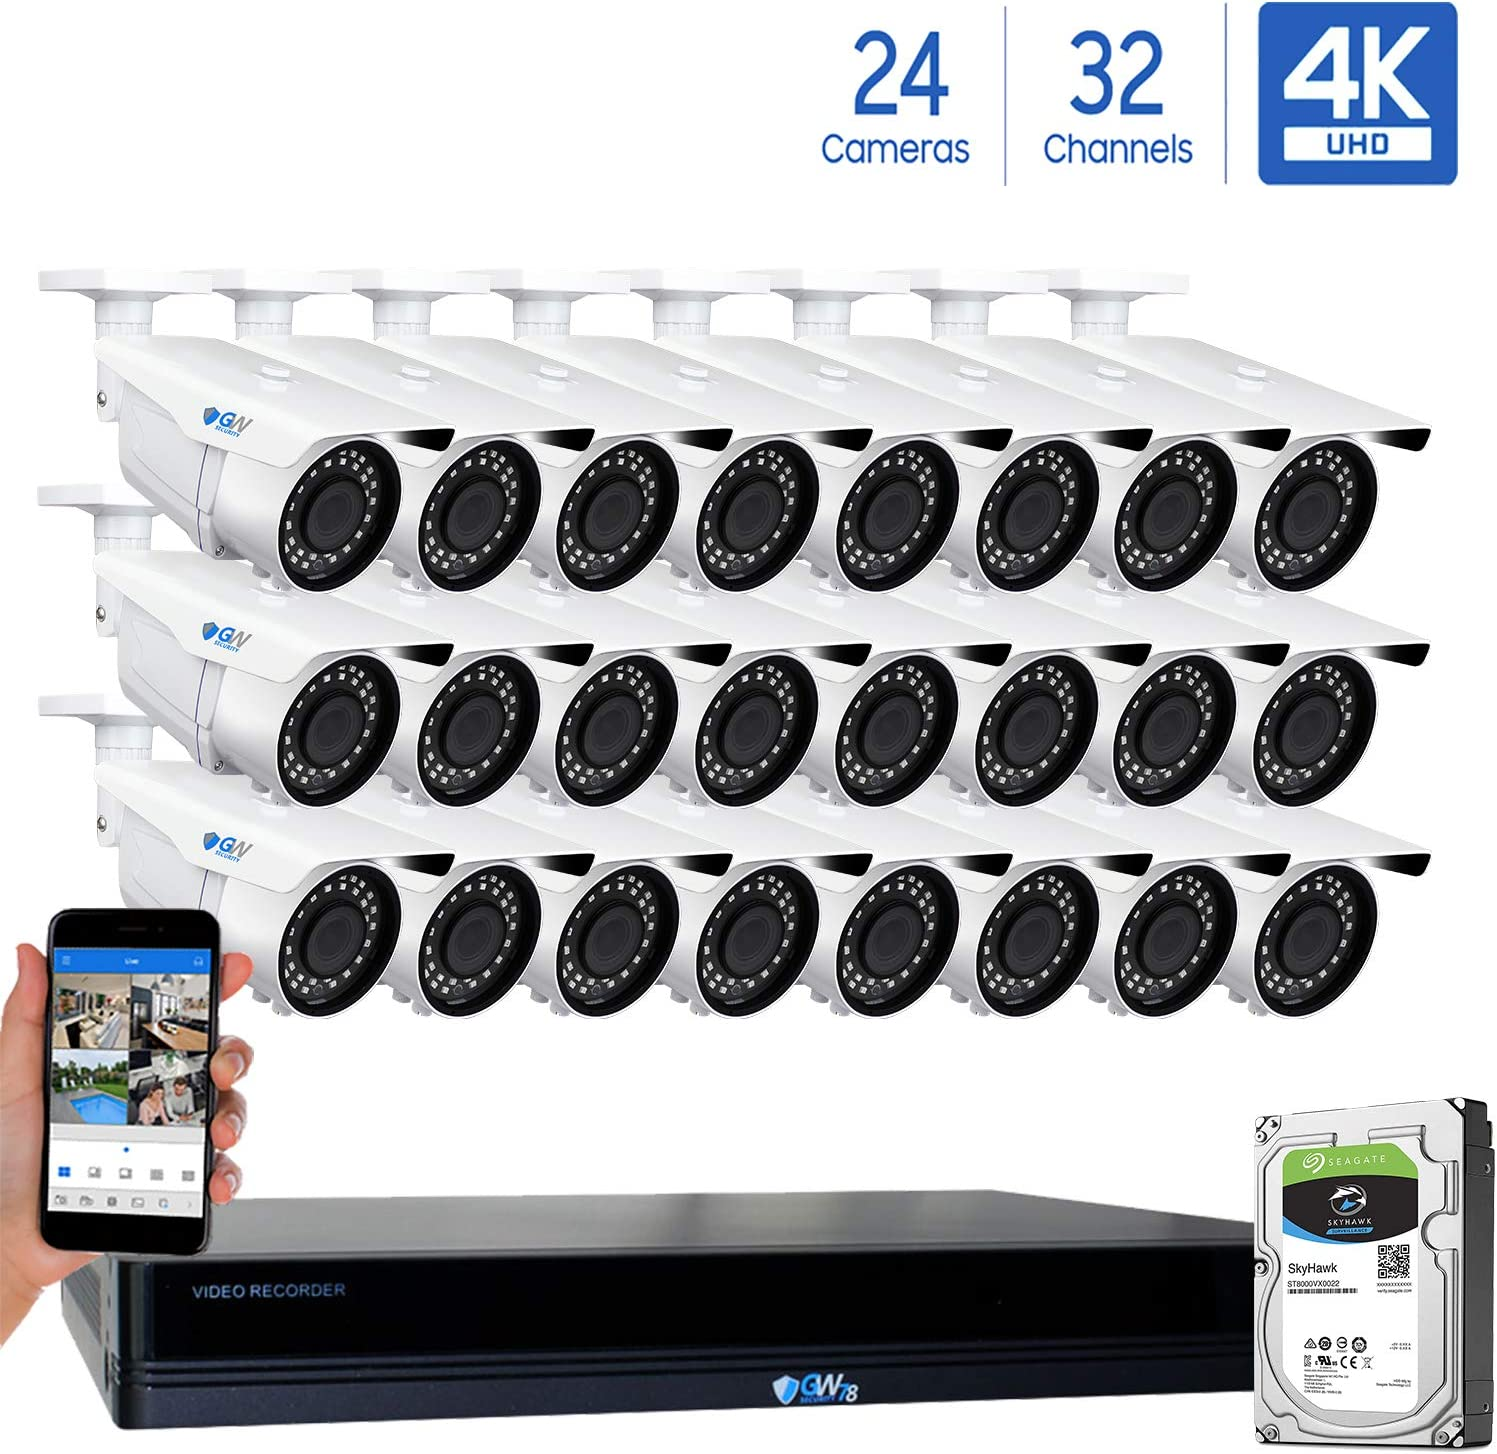 GW 32 Channel 4K NVR 8MP 3840×2160 H.265 PoE Security Camera System – 24 x UltraHD 4K 2.7 13.5mm Varifocal Zoom 196ft IR 2160p IP Cameras – 8 Megapixel Four Times The Resolution of 1080p Full HD